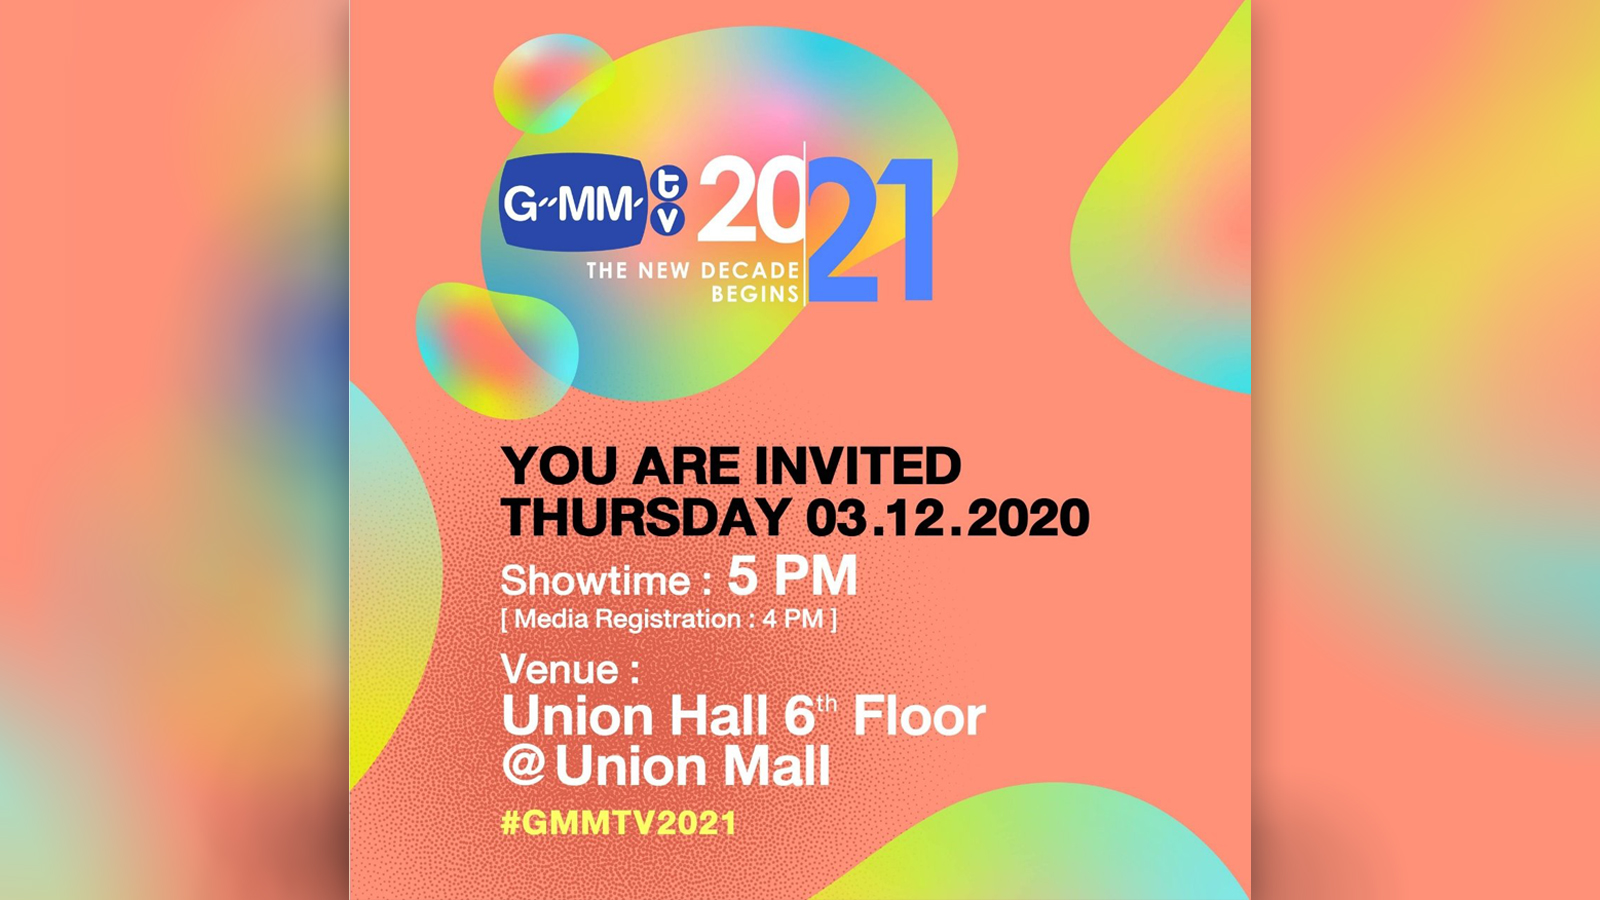 GMMTV 2021 The New Decade Begins